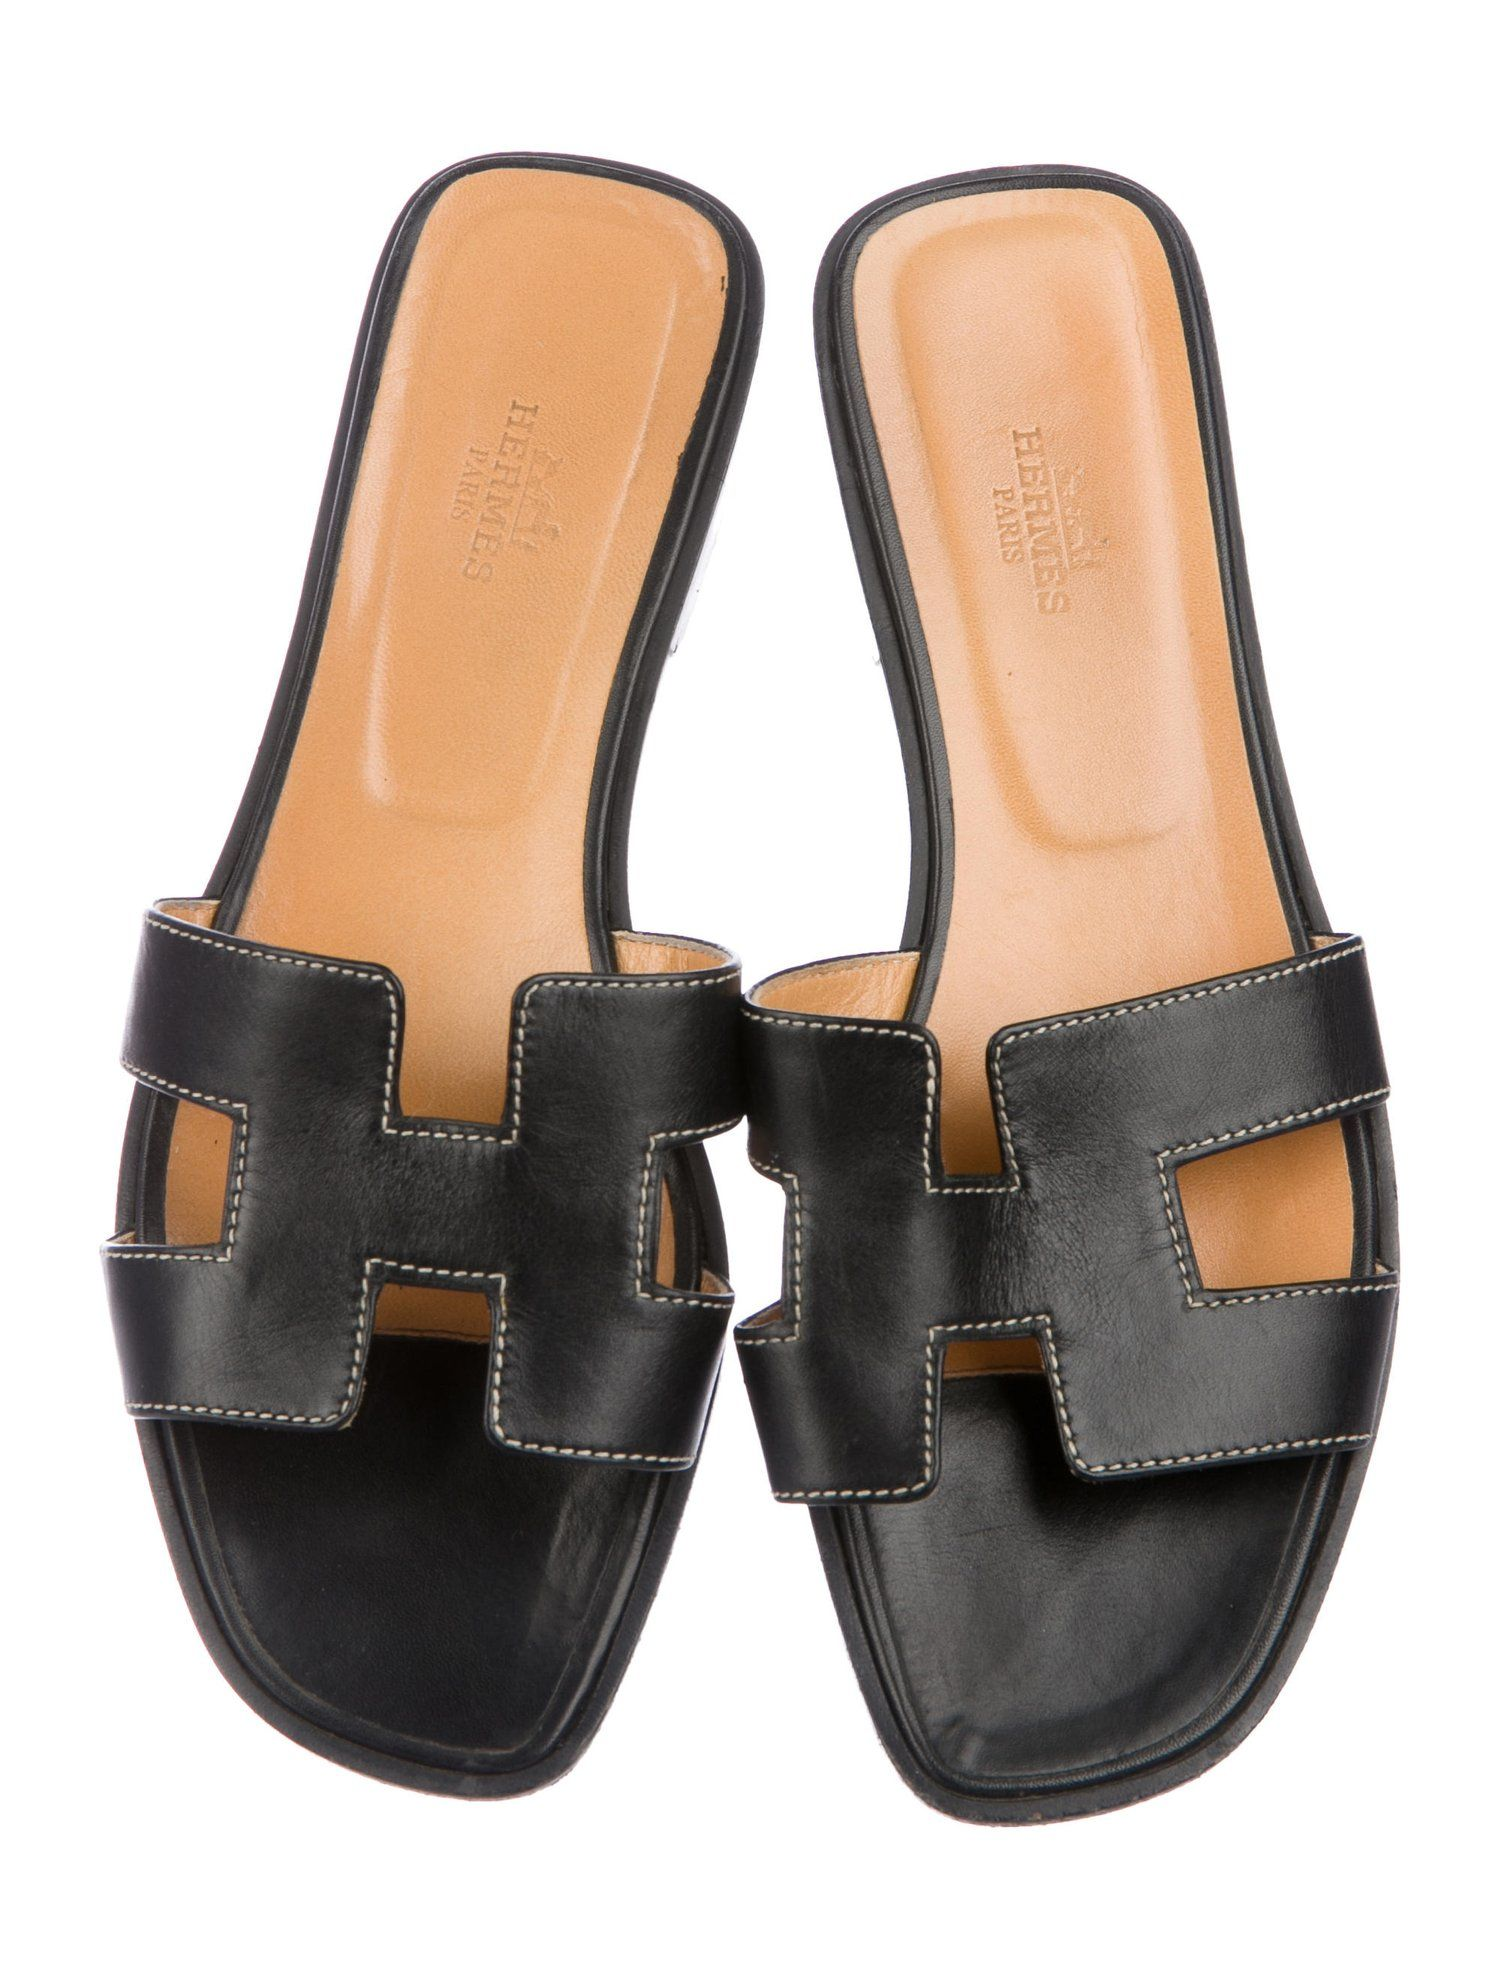 Leather Oran Sandals | Shoes, Sandals, Shoes with jeans